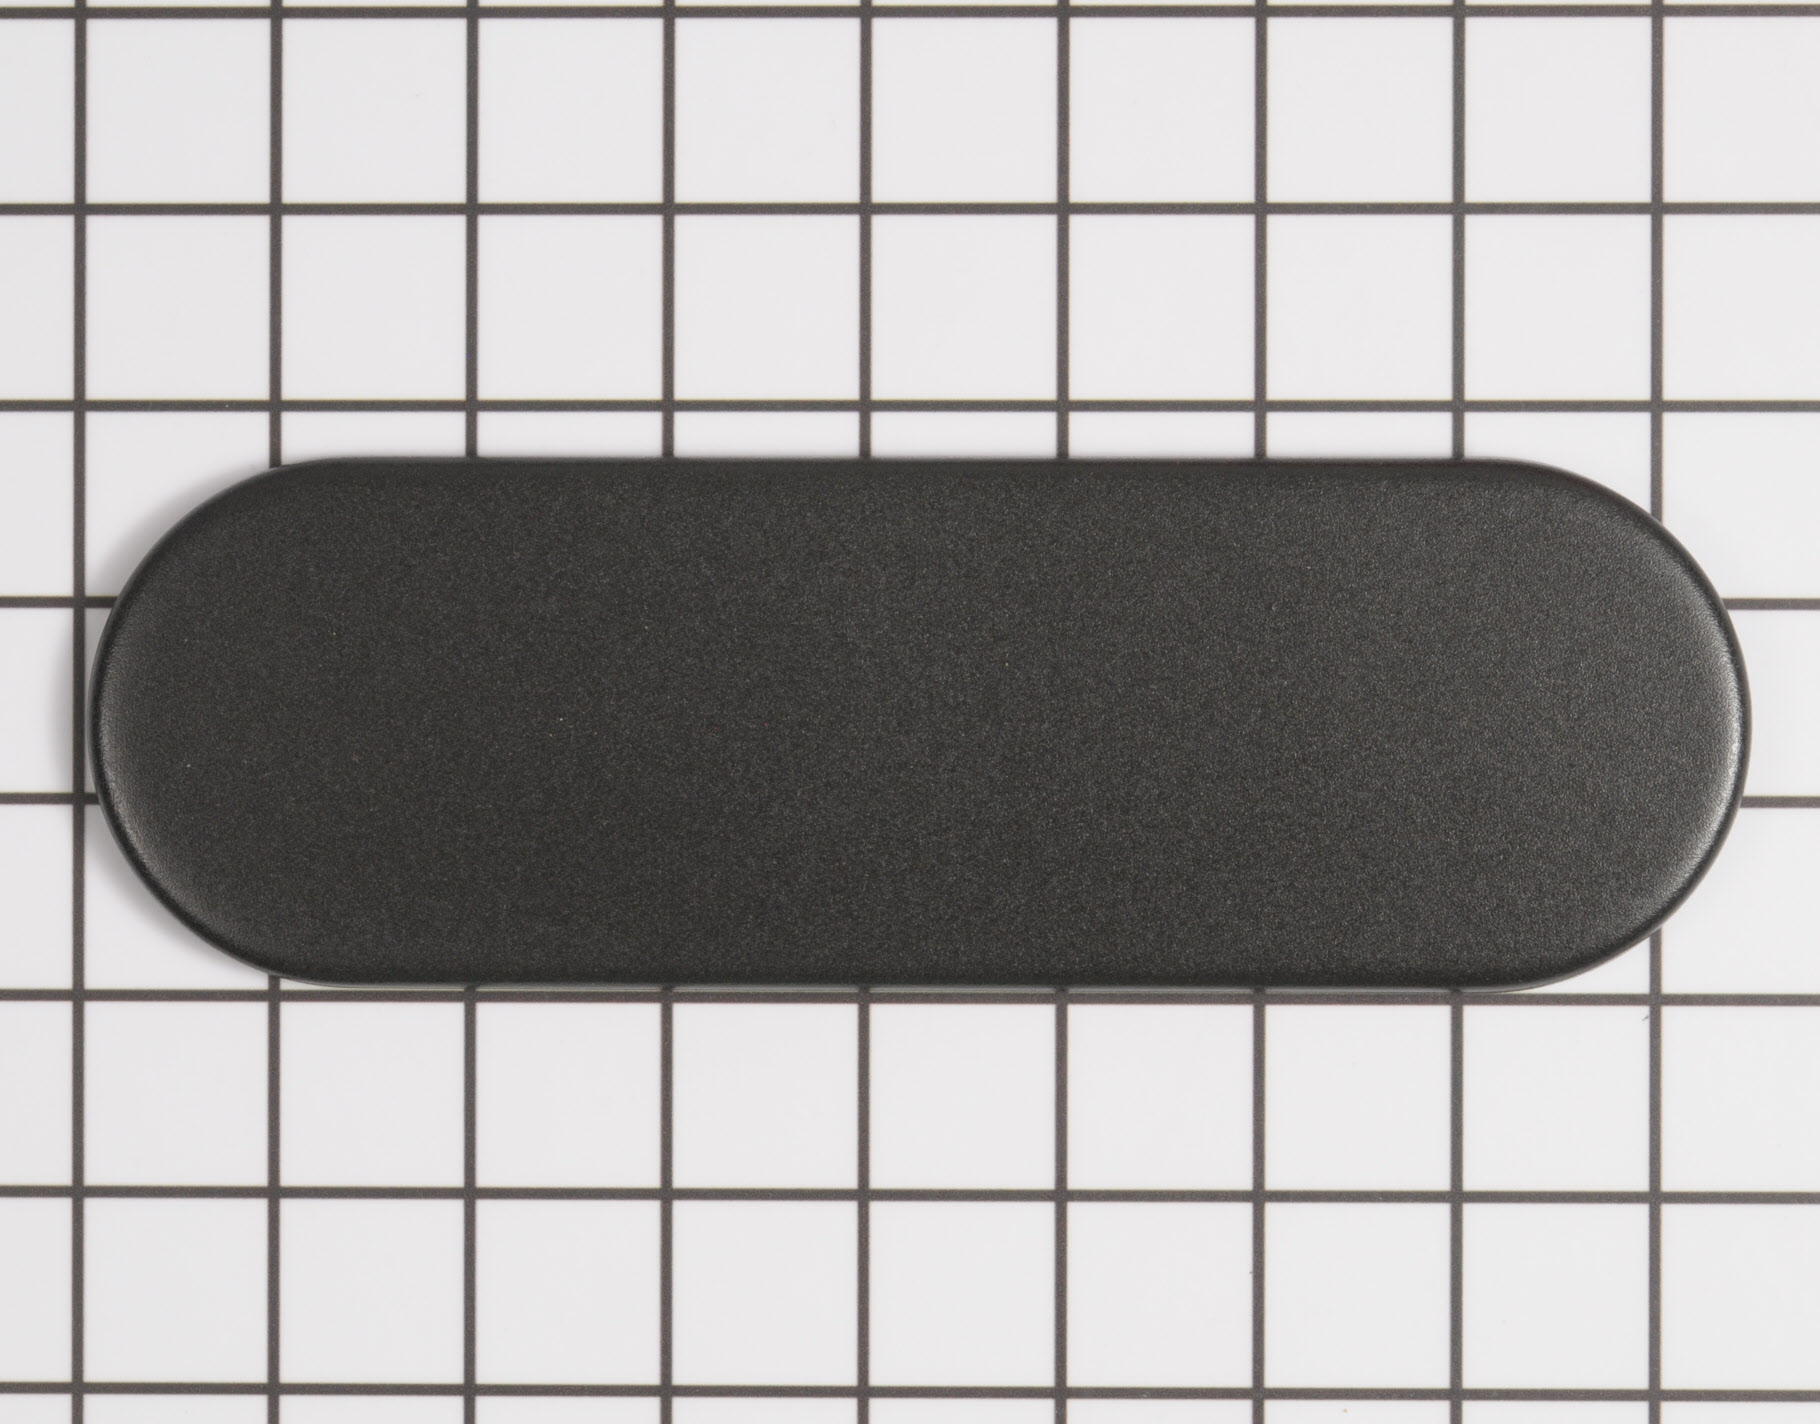 Whirlpool Range/Stove/Oven Part # WPW10171140 - Surface Burner Cap